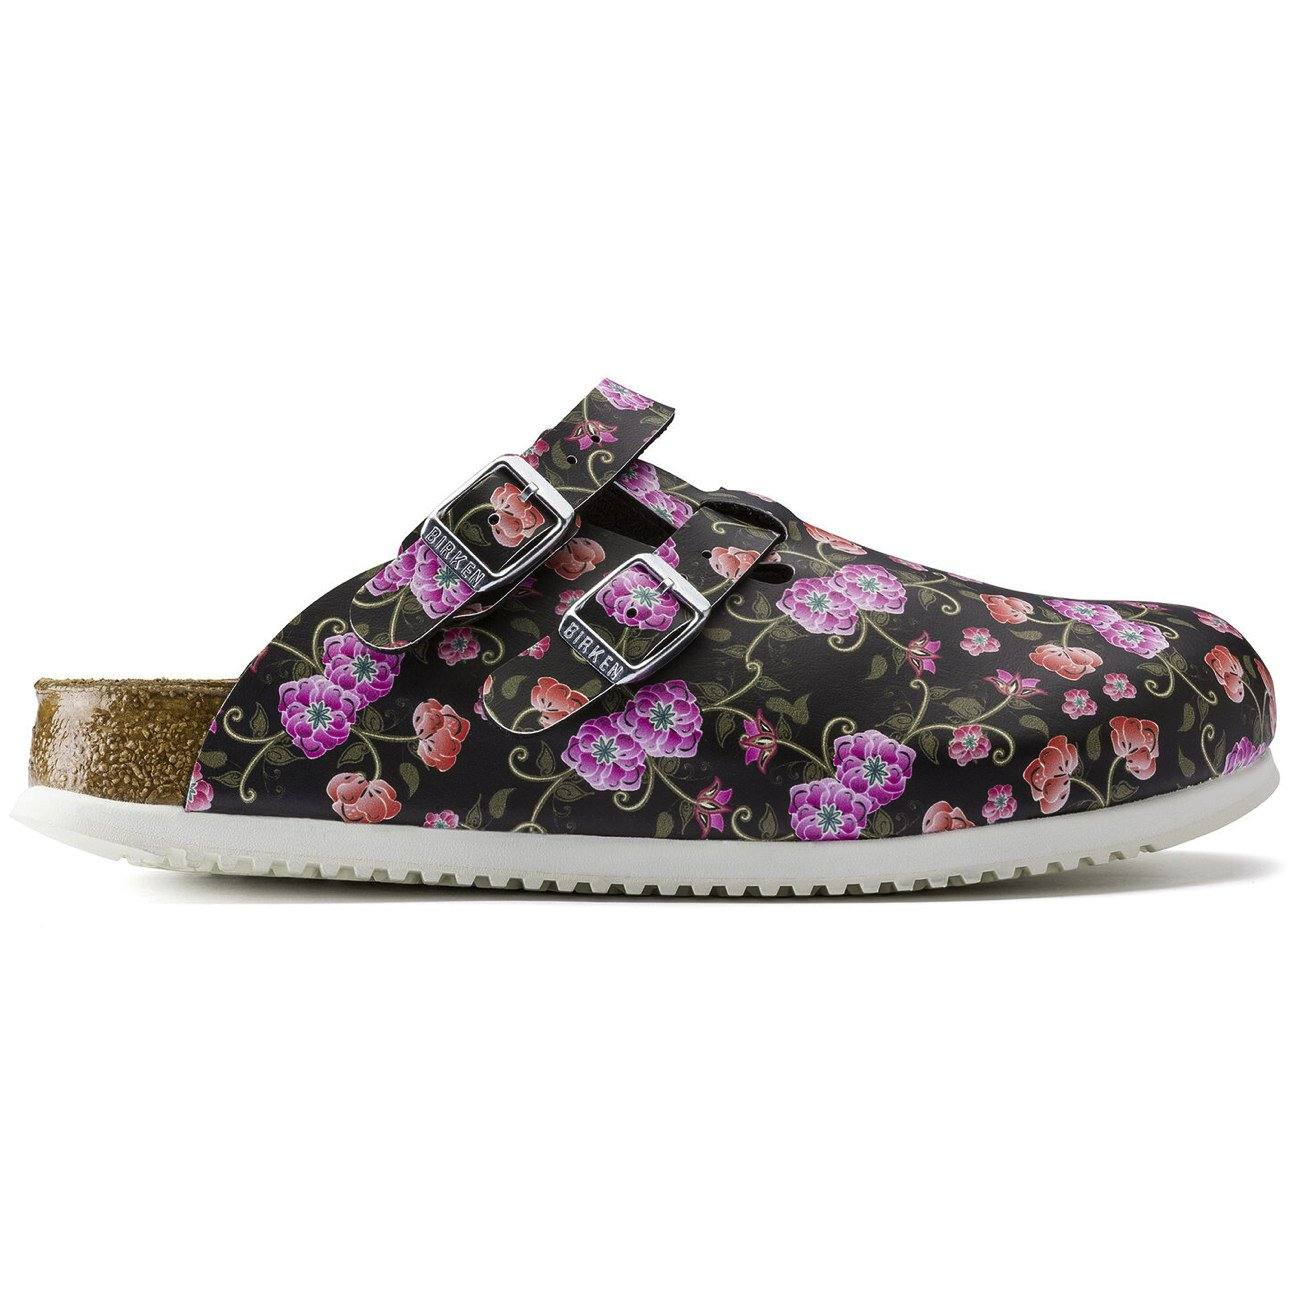 Birkenstock Professional, Kay Supergrip, Birko-Flor, Narrow Fit, Blooming Roses Black Clogs Birkenstock Professional Blooming Roses Black 35